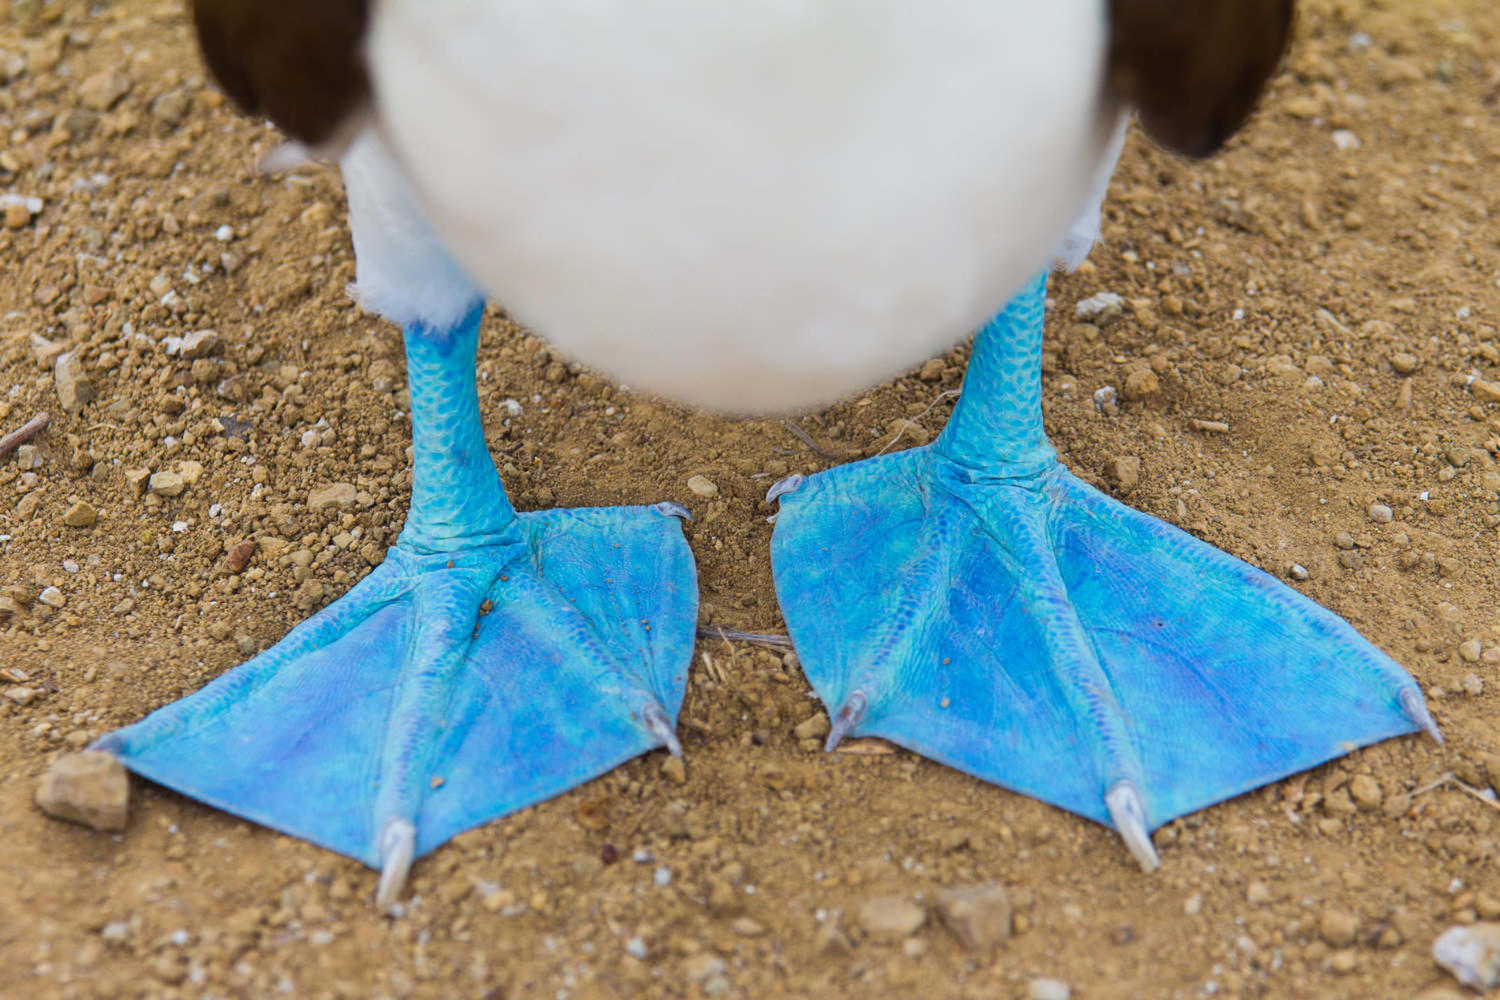 Close up of feet of a blue footed booby